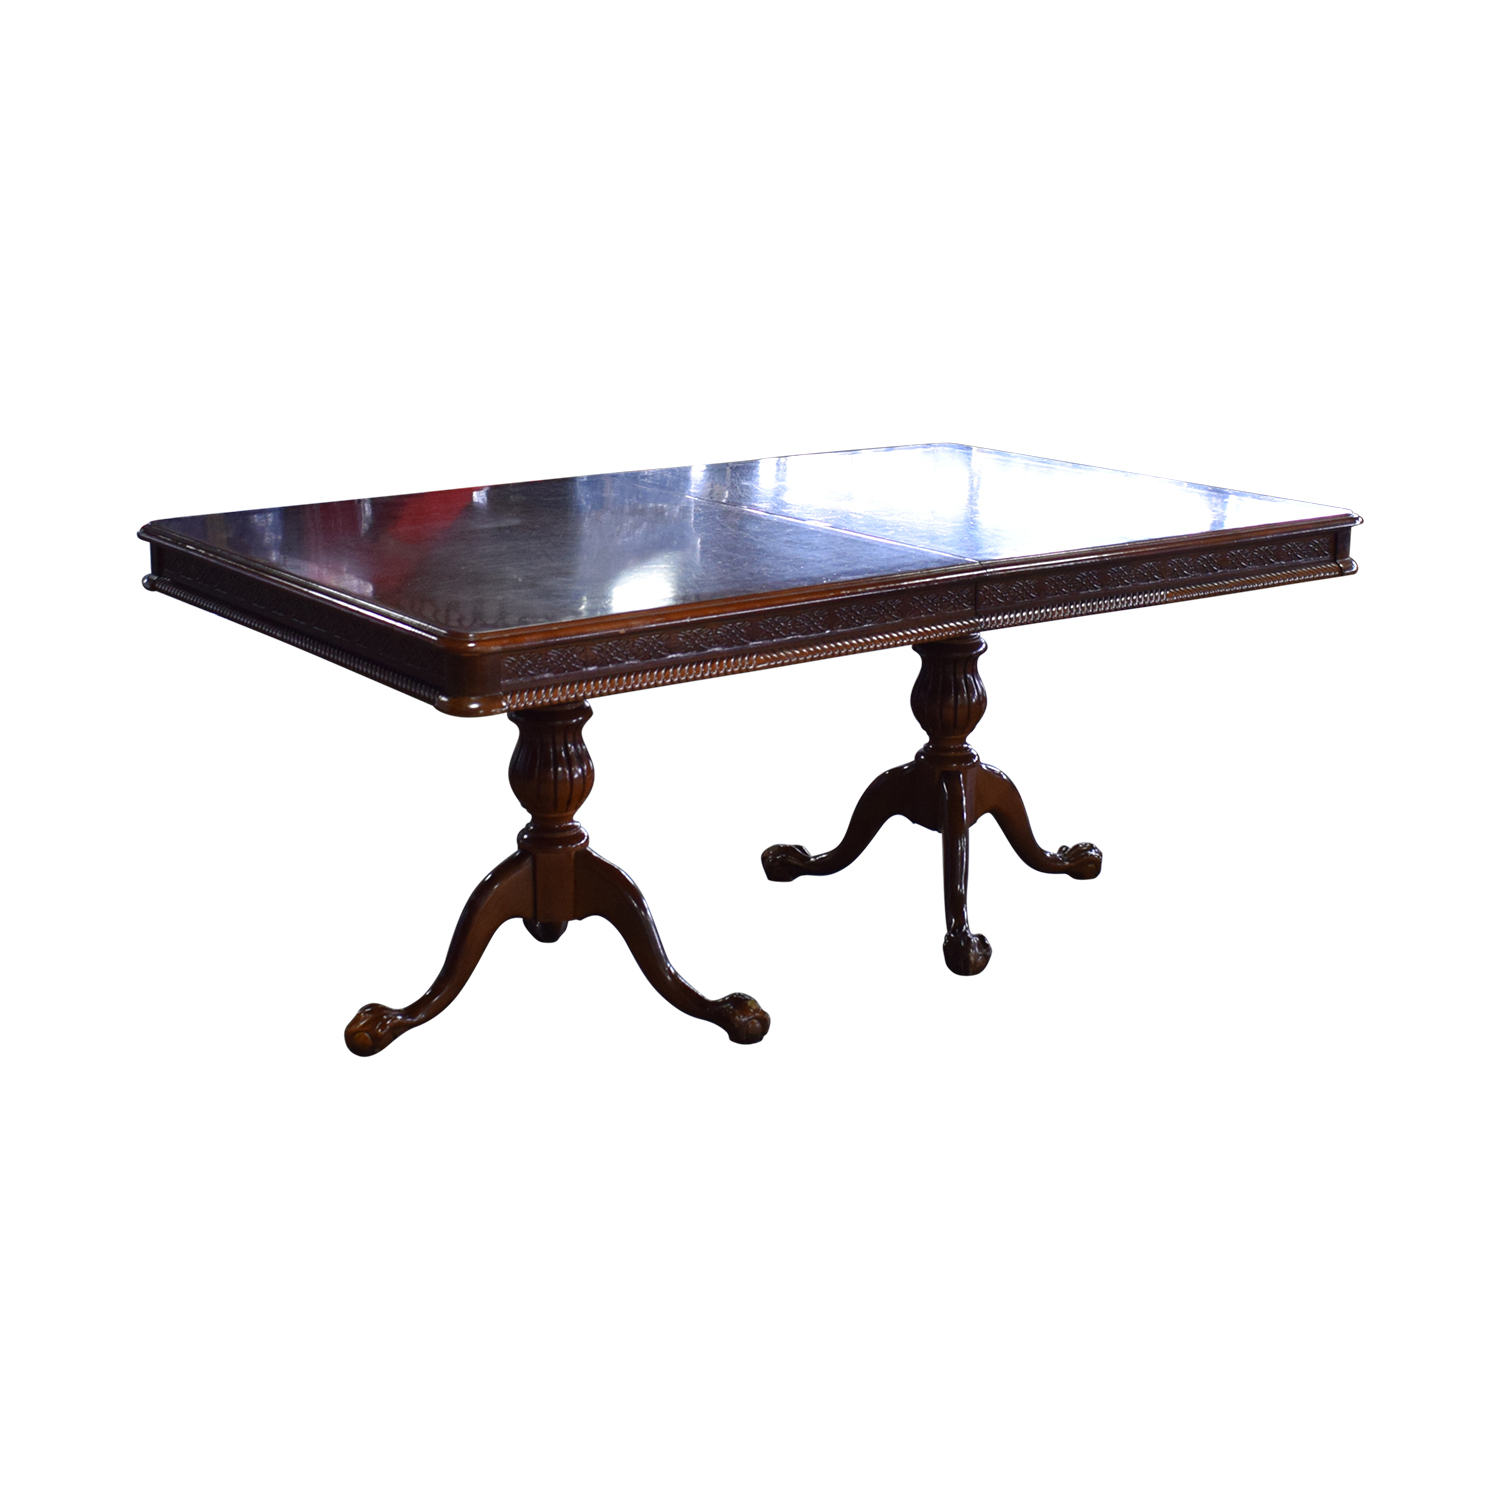 Carved Wood Dining Table with Two Extensions coupon